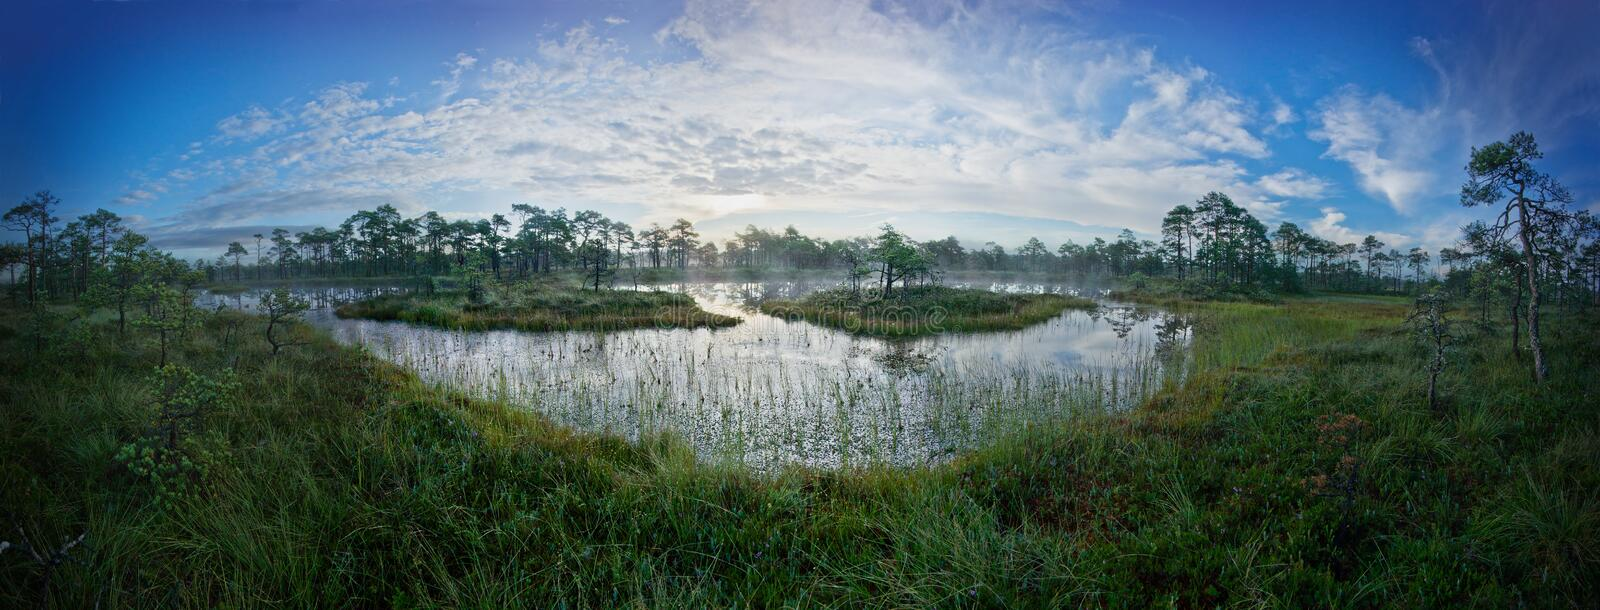 Sunrise in the bog. Icy cold marsh. Frosty ground. Swamp lake and nature. Freeze temperatures in moor. Muskeg natural environment. stock photos